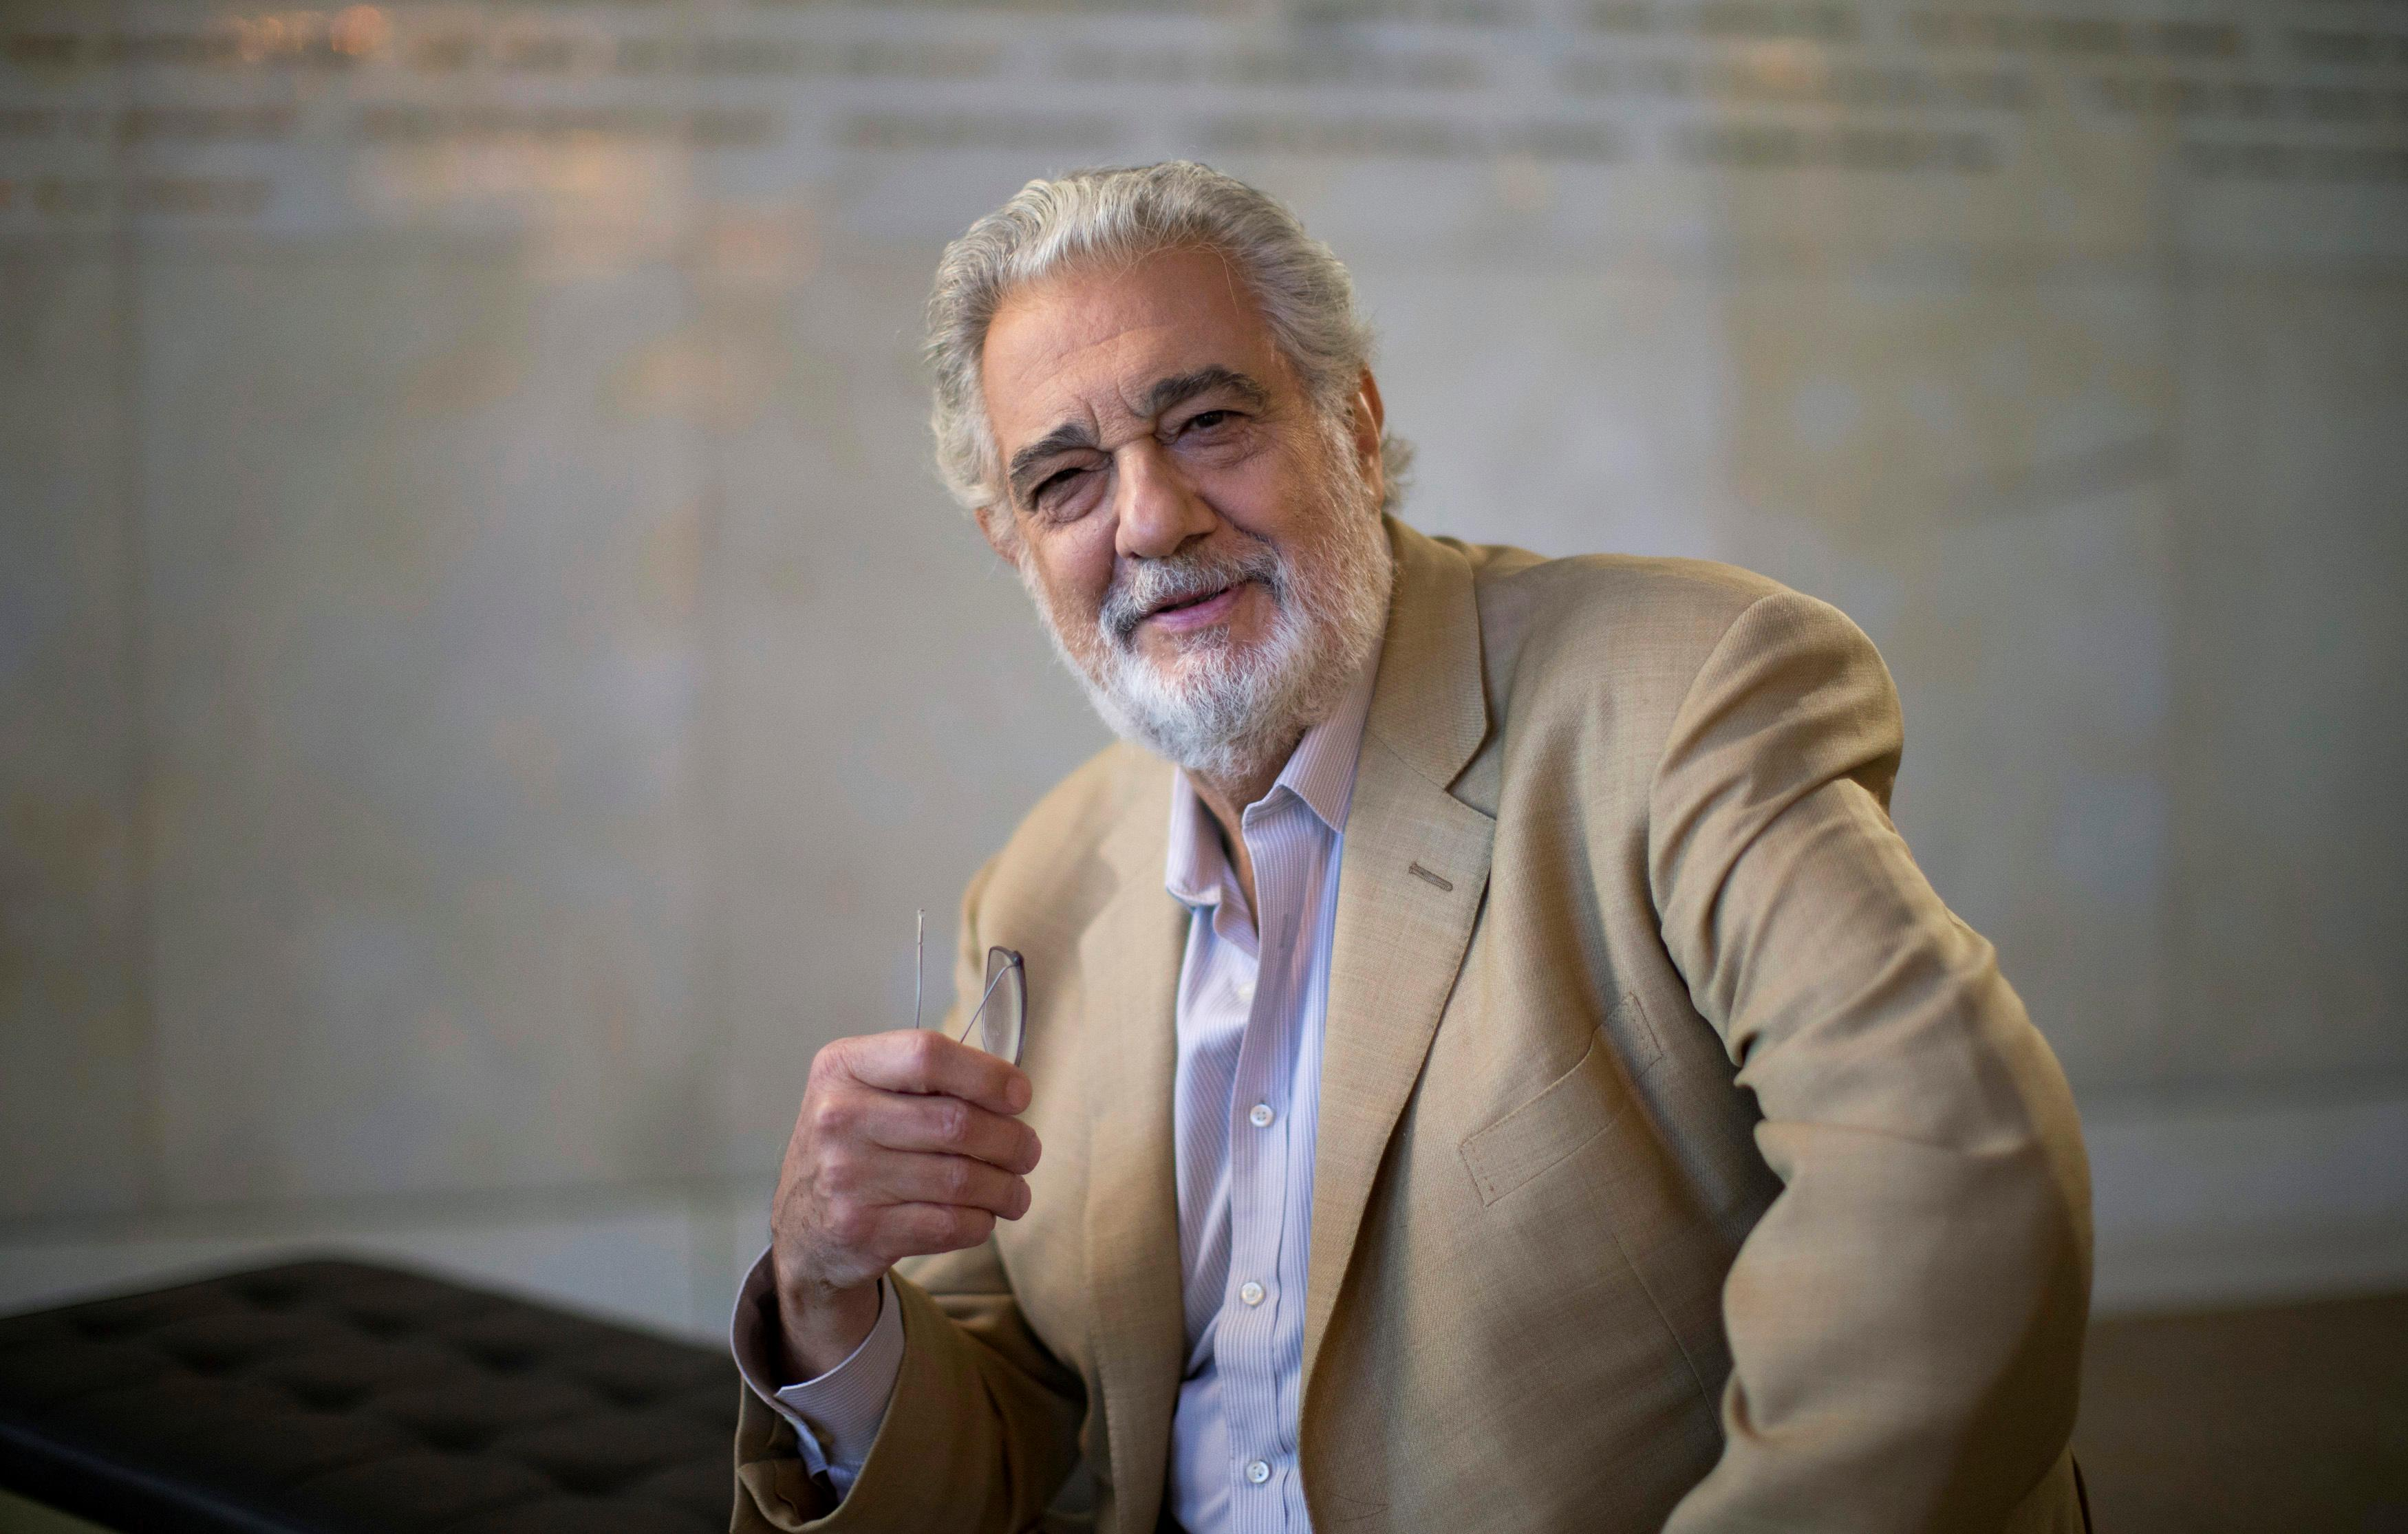 Placido Domingo resigns from LA Opera leadership